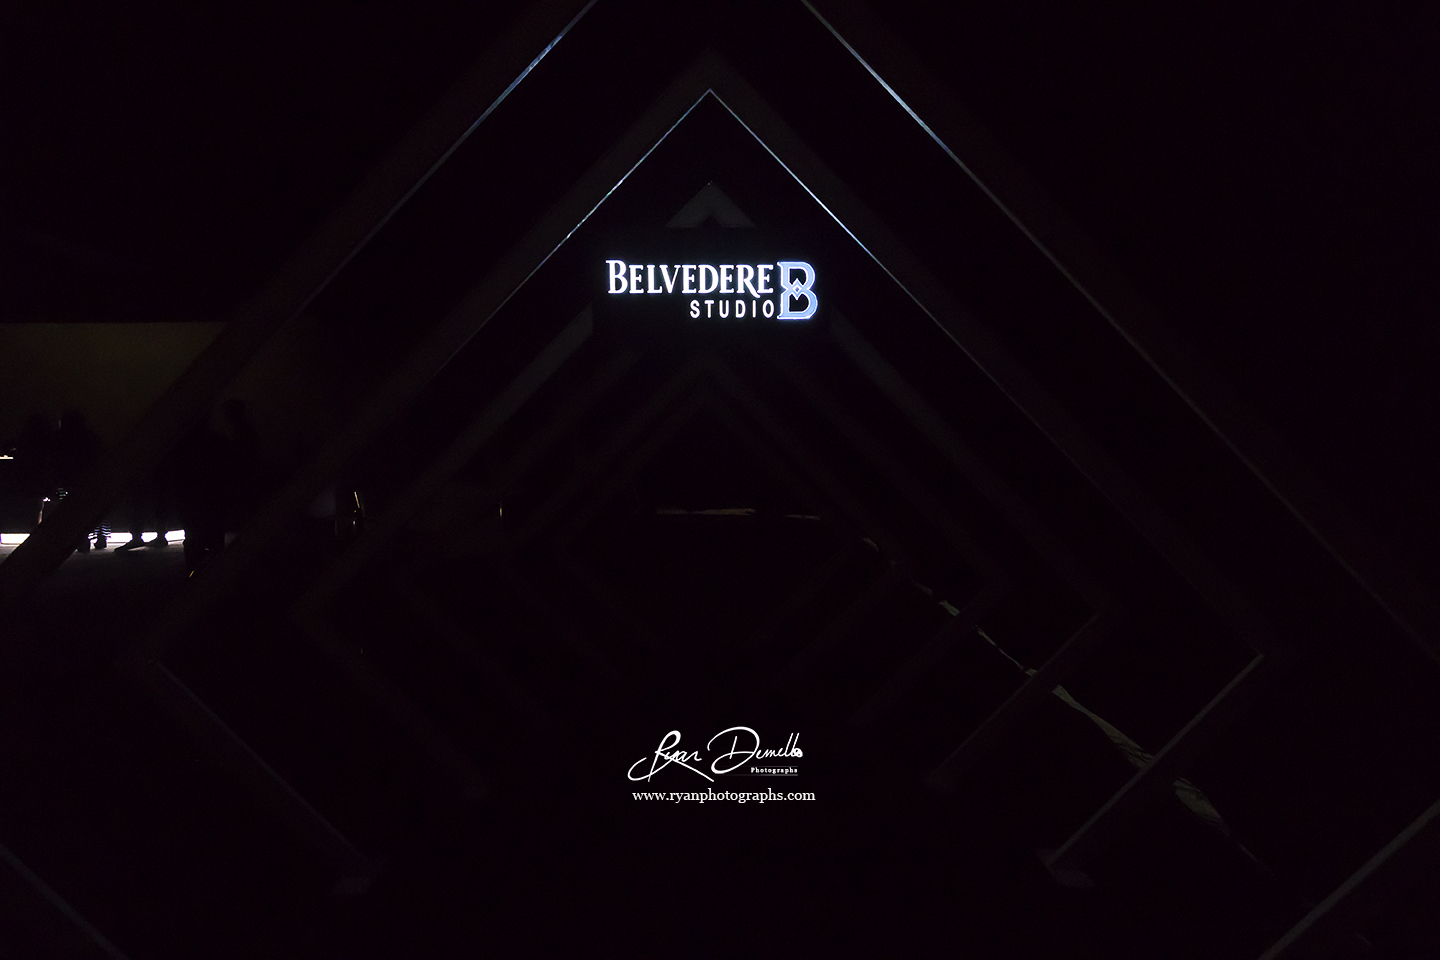 Belvedere Studio B Launch Party